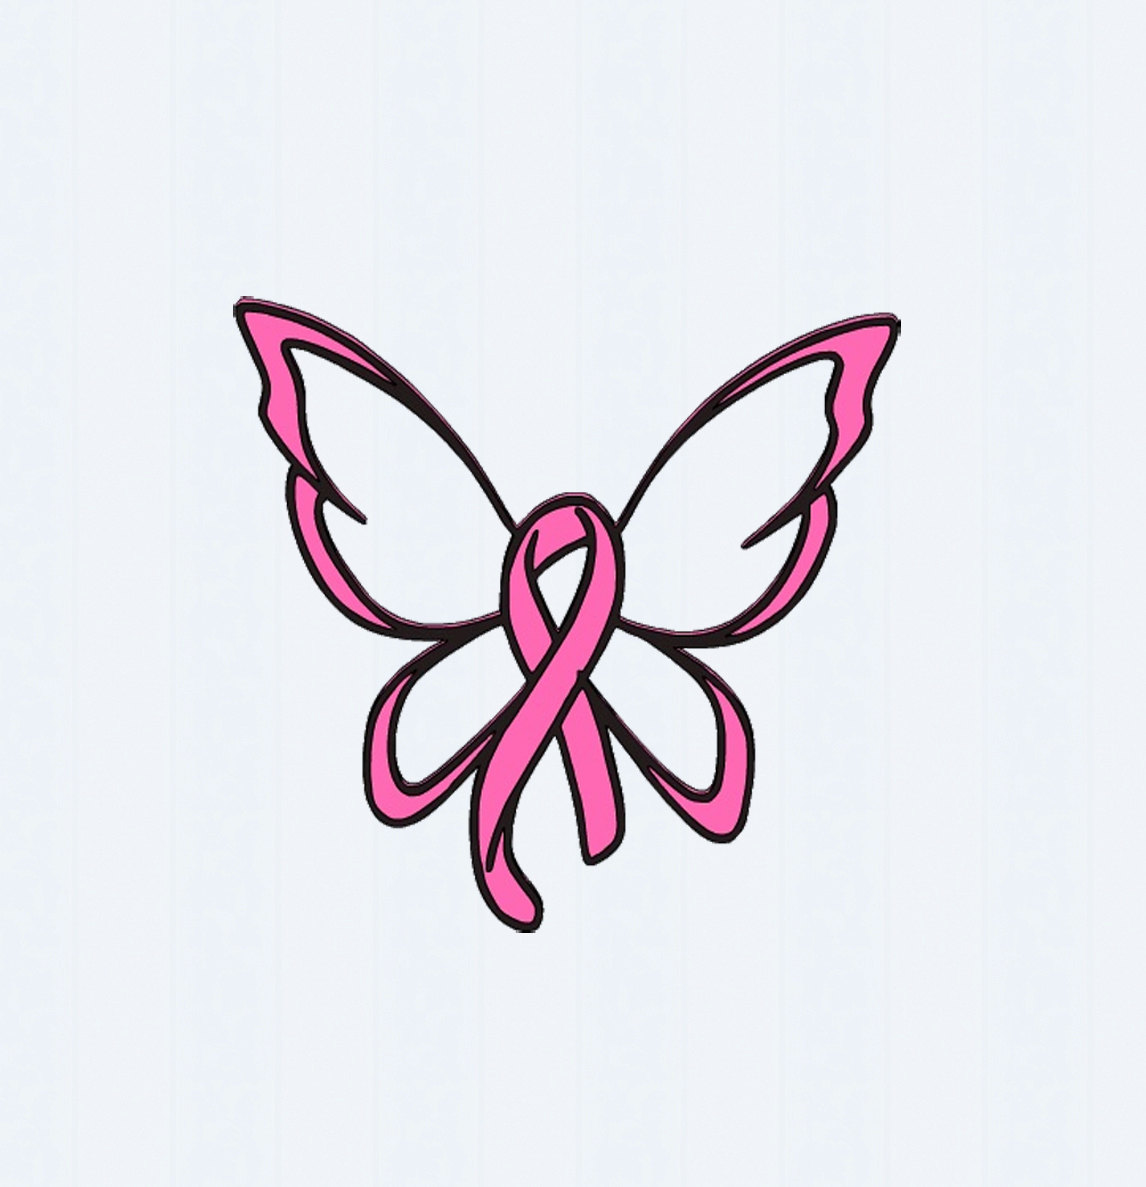 Cancer Ribbon Butterfly Tattoo